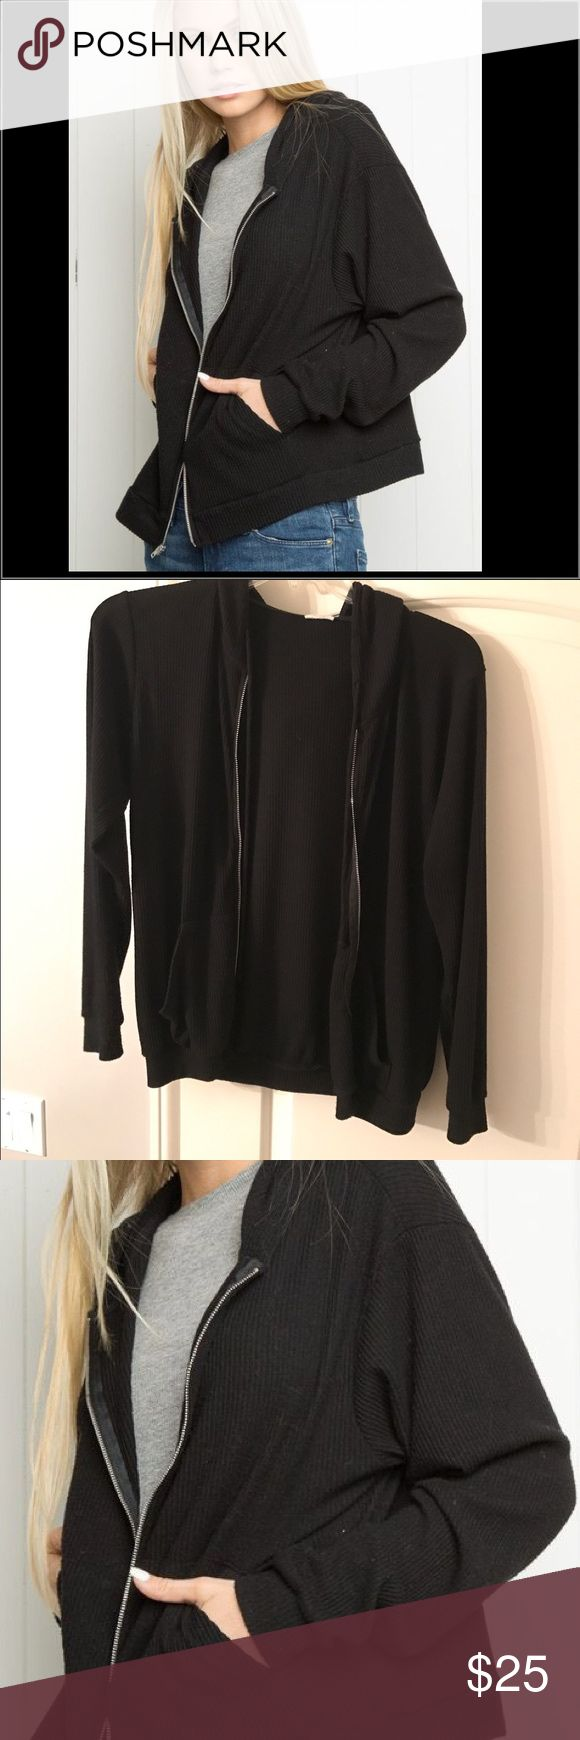 Brandy Melville Black Zip Hoodie Really comfy and in great condition. Has two pockets and a hoodie. Ribbed design. Great for sweater weather Brandy Melville Tops Sweatshirts & Hoodies